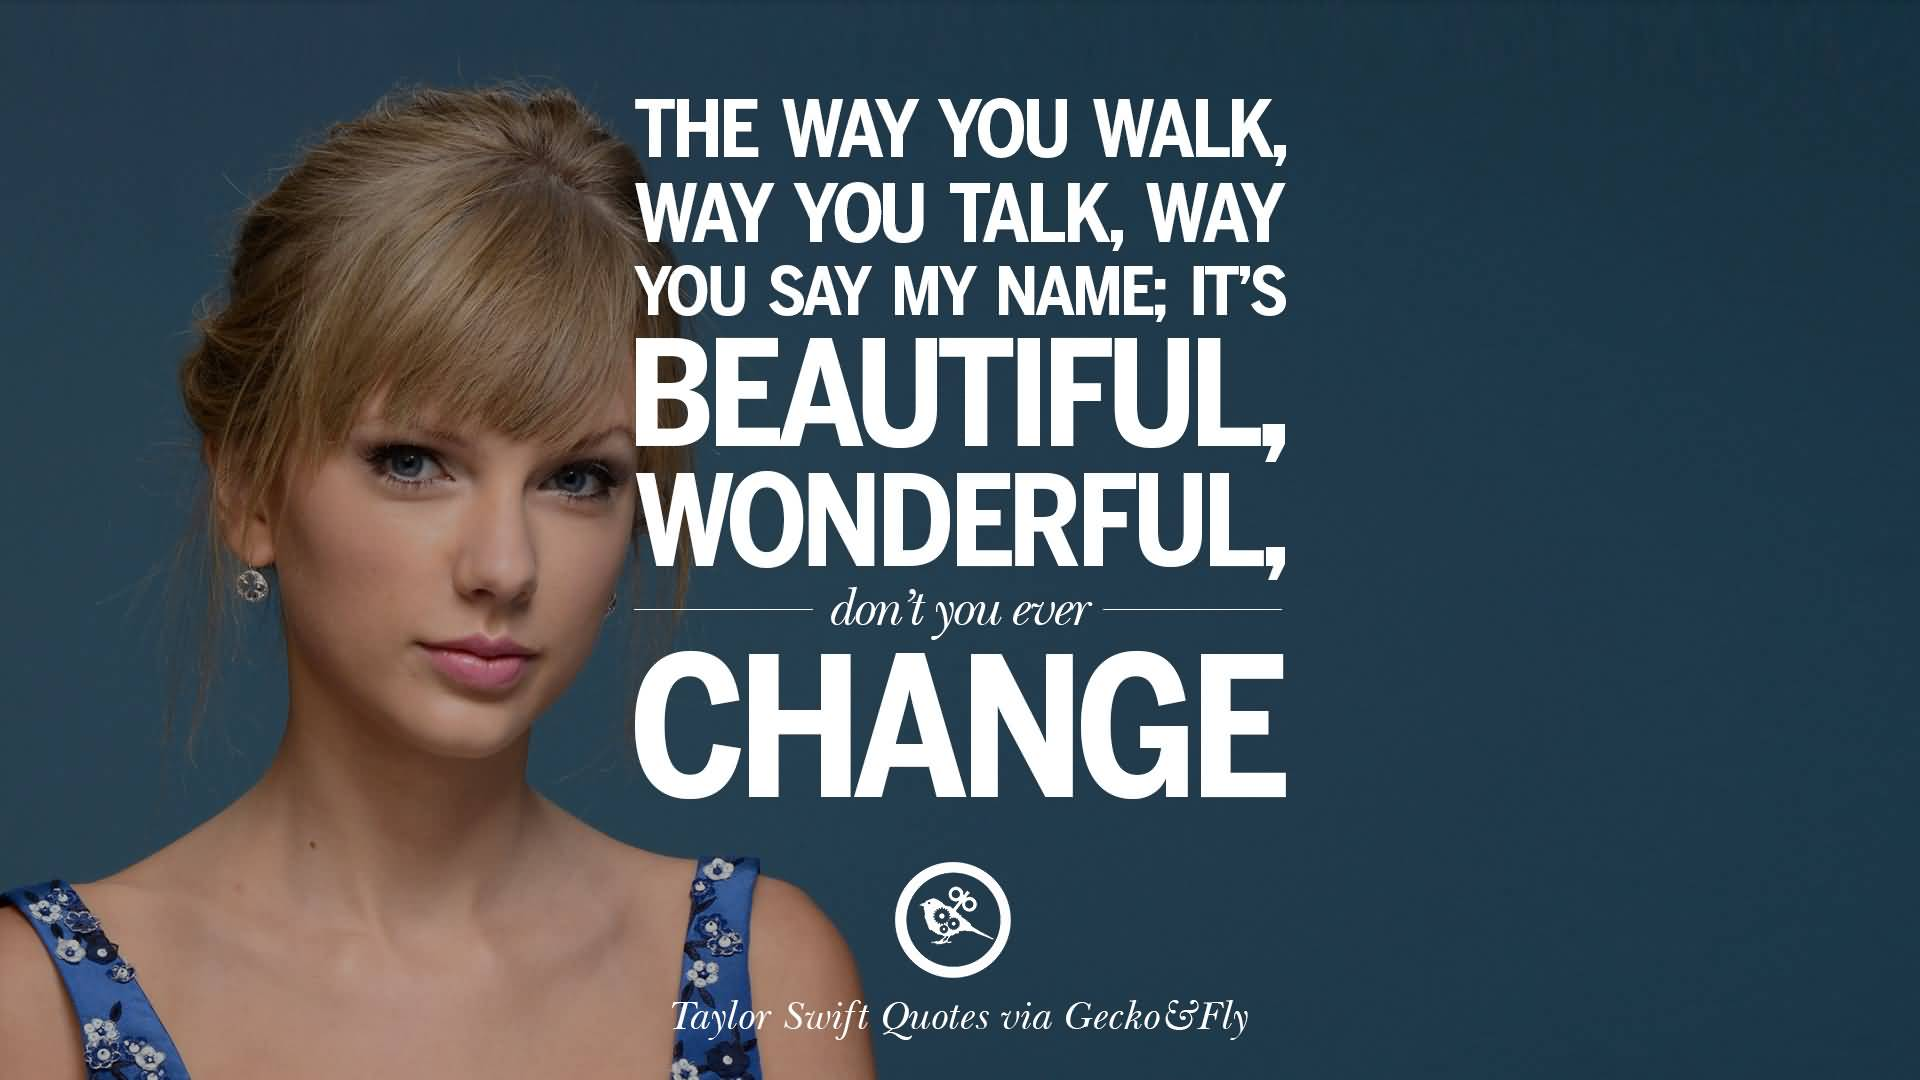 The Way You Walk Taylor Swift Quotes